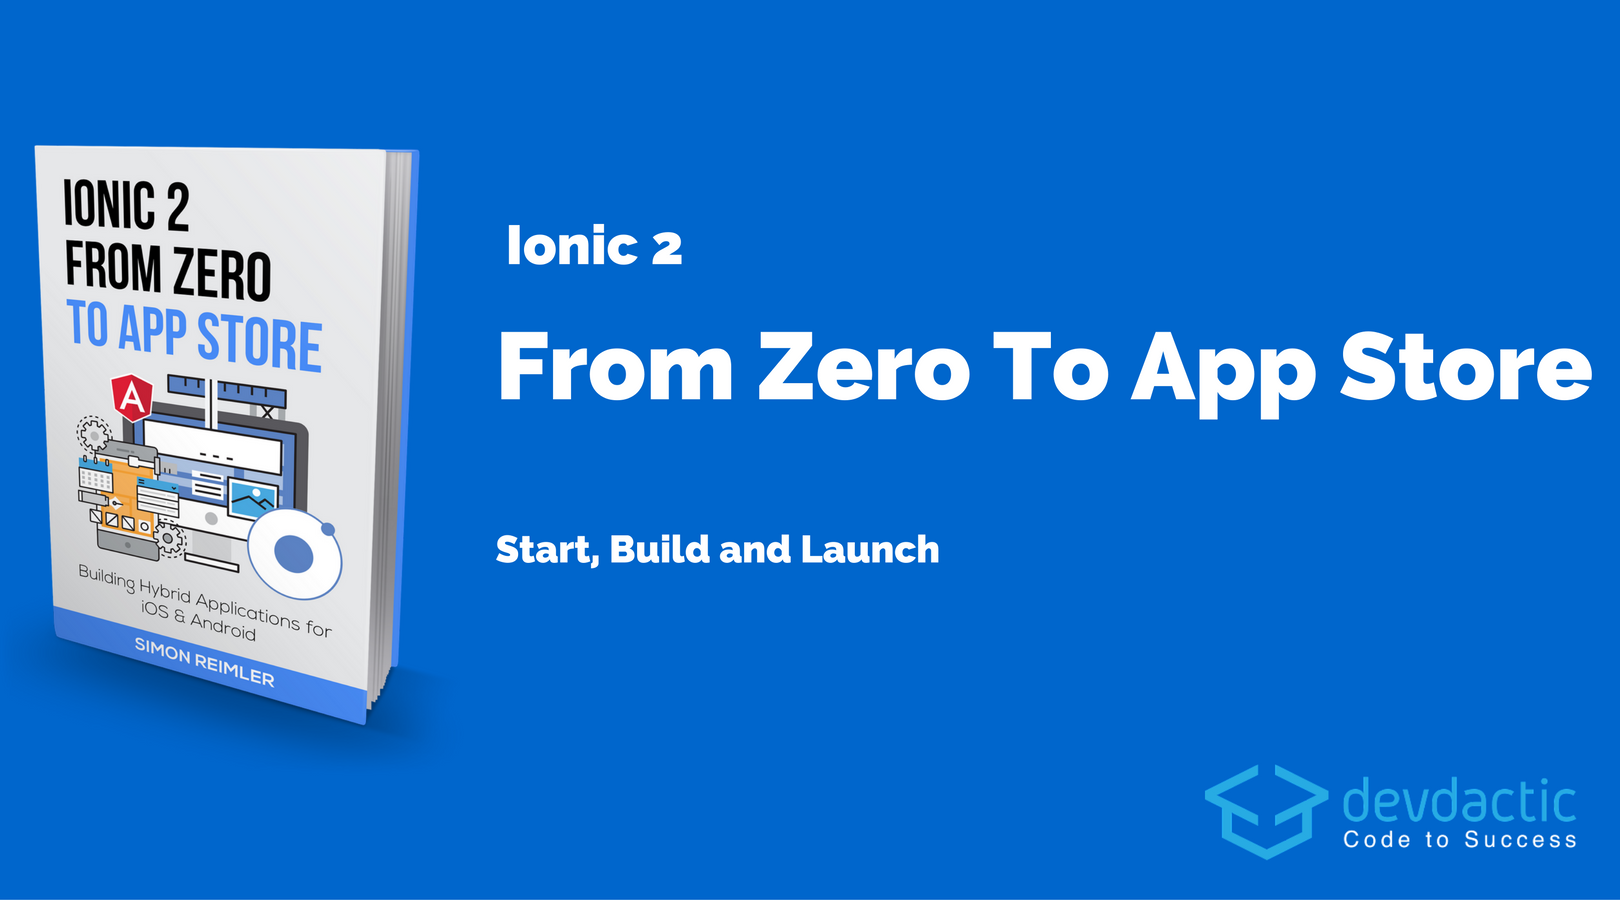 7 steps to start, build and launch ionic 2 apps devdactic7 steps to start, build and launch ionic 2 apps